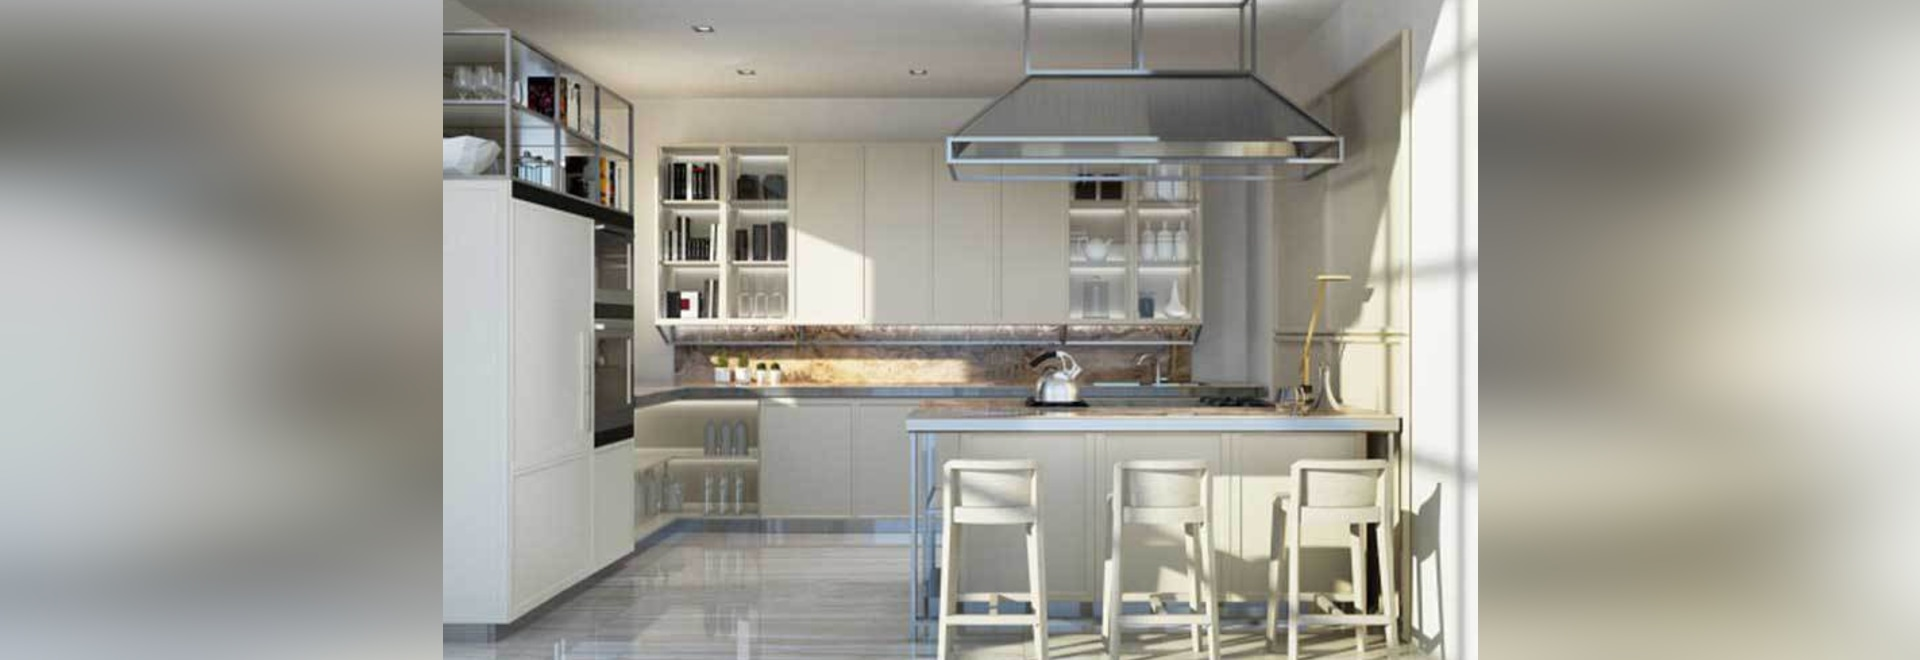 SNAIDERO HAS BEEN CHOSEN TO FURNISH THE KITCHEN INTERIORS IN THE